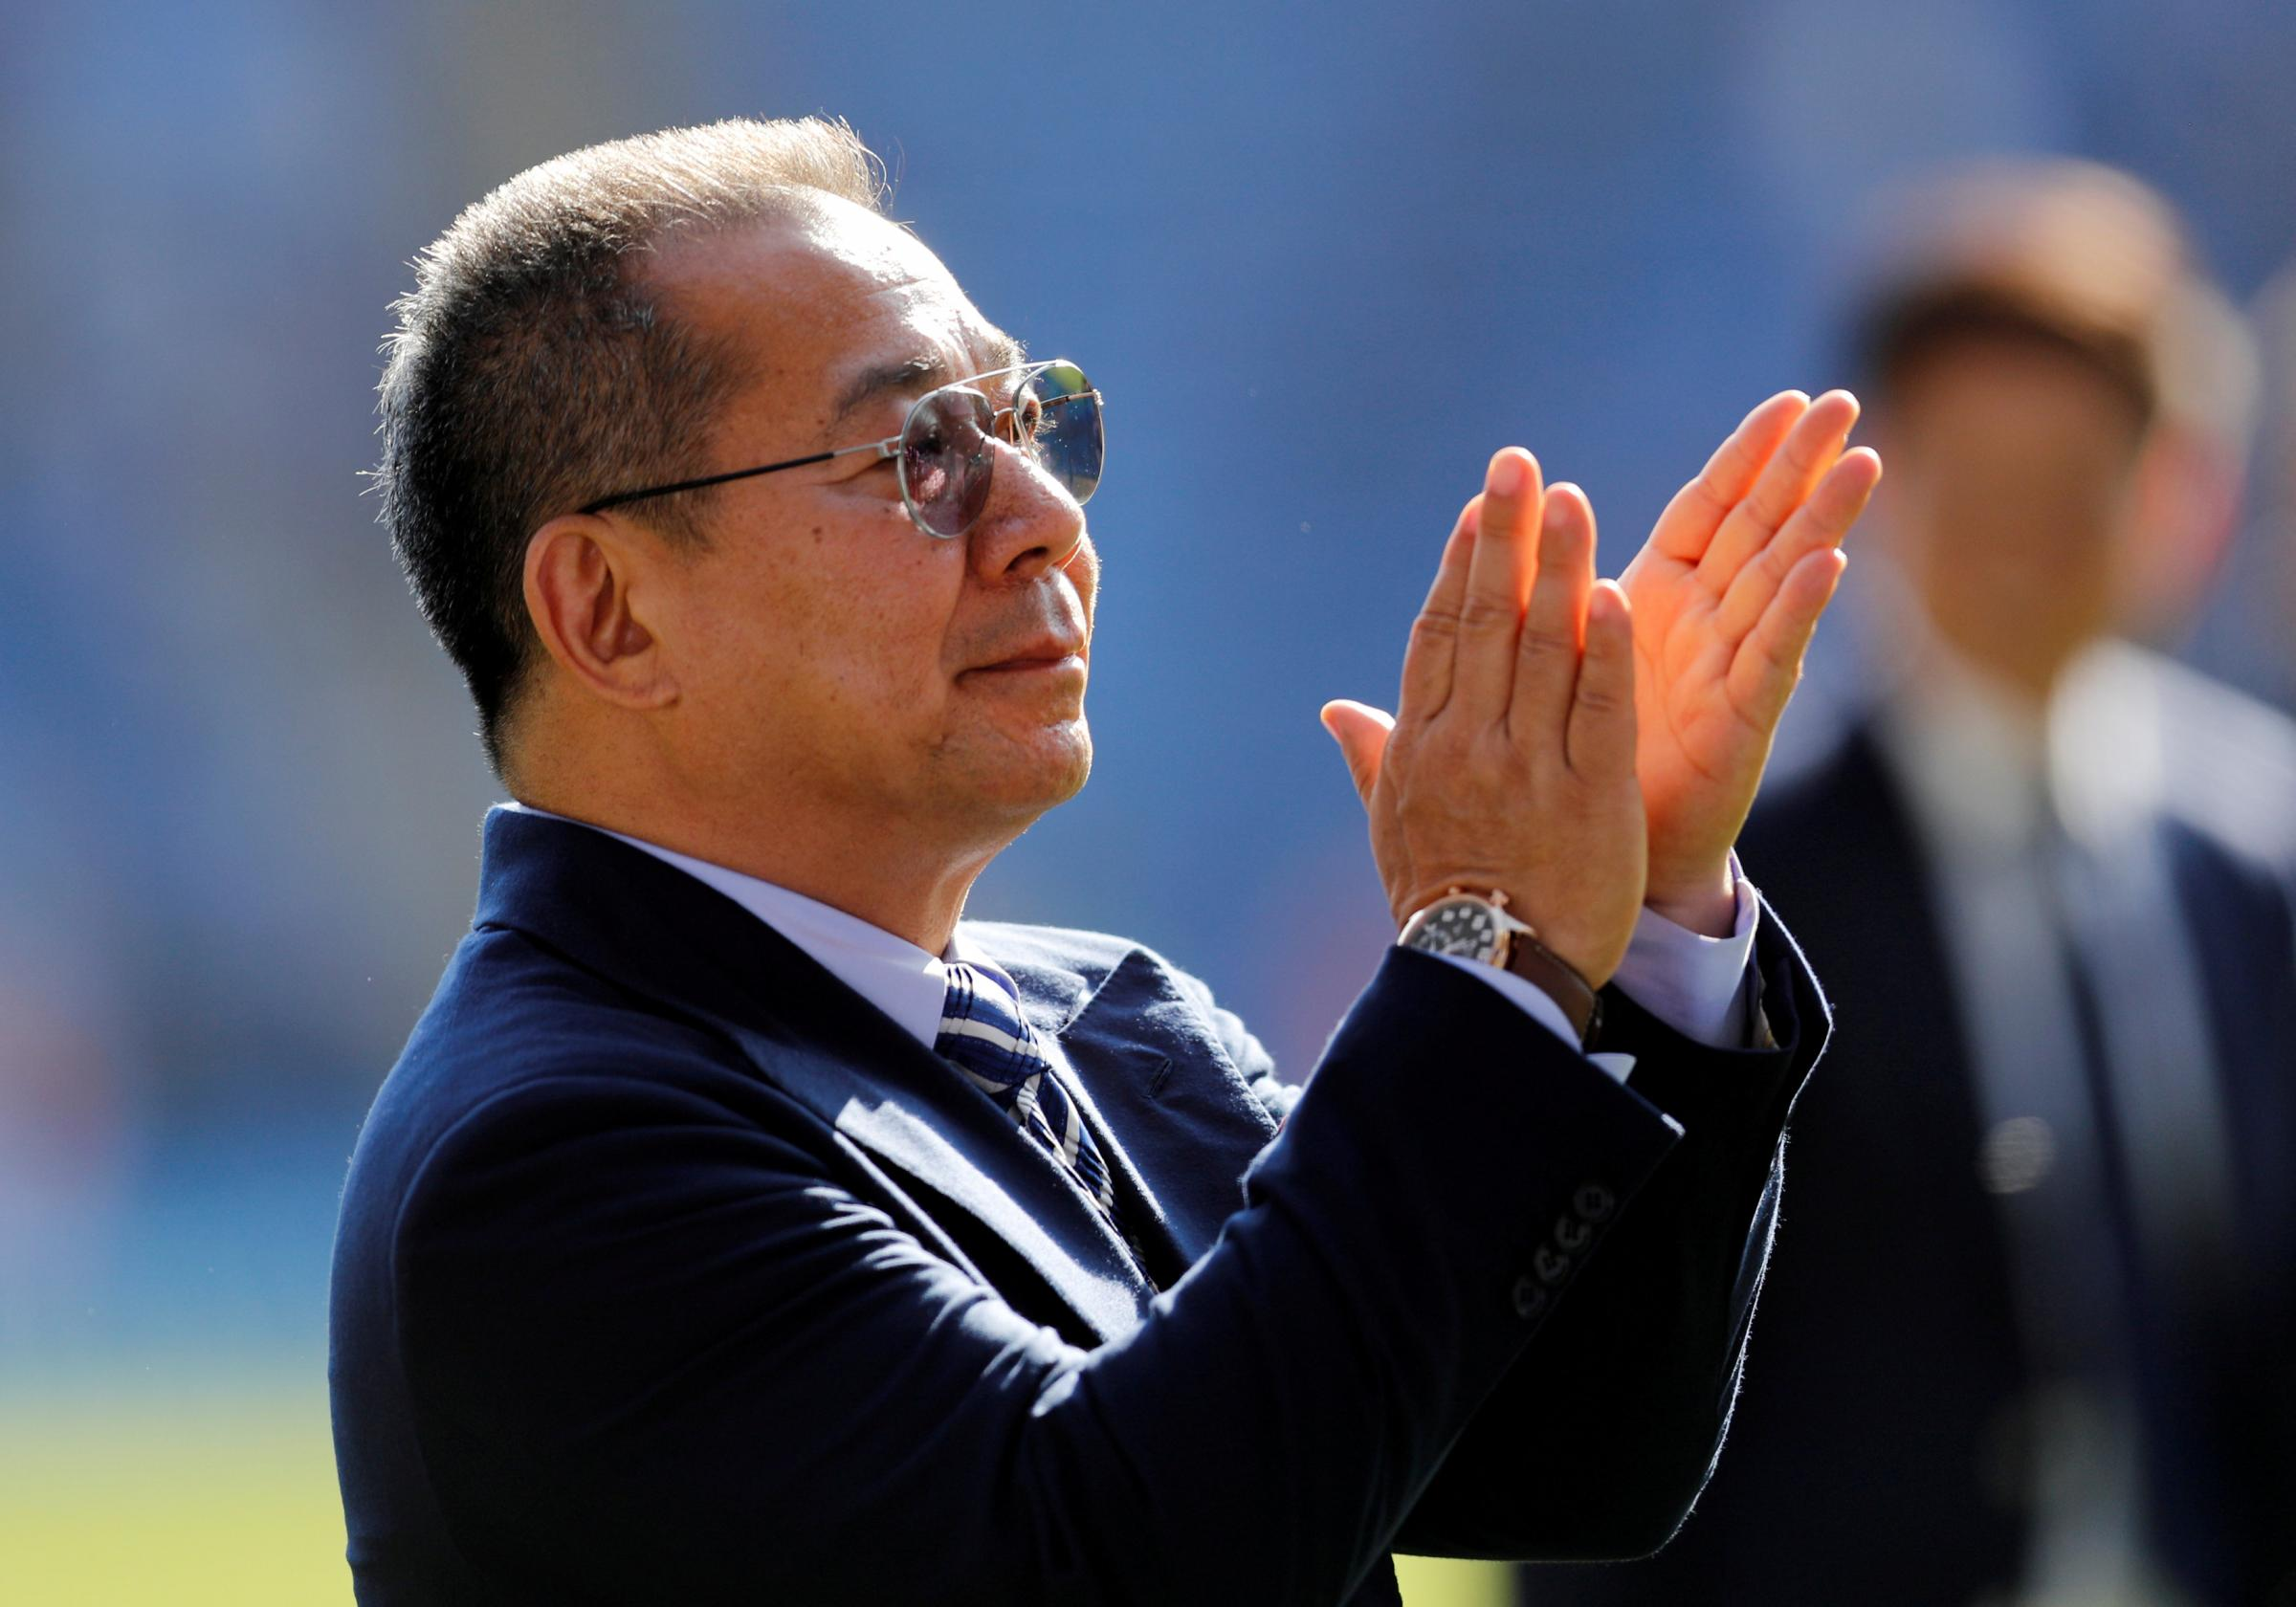 Vichai Srivaddhanaprabha tragically lost dies in a helicopter crash on Saturday. Picture: Action Images